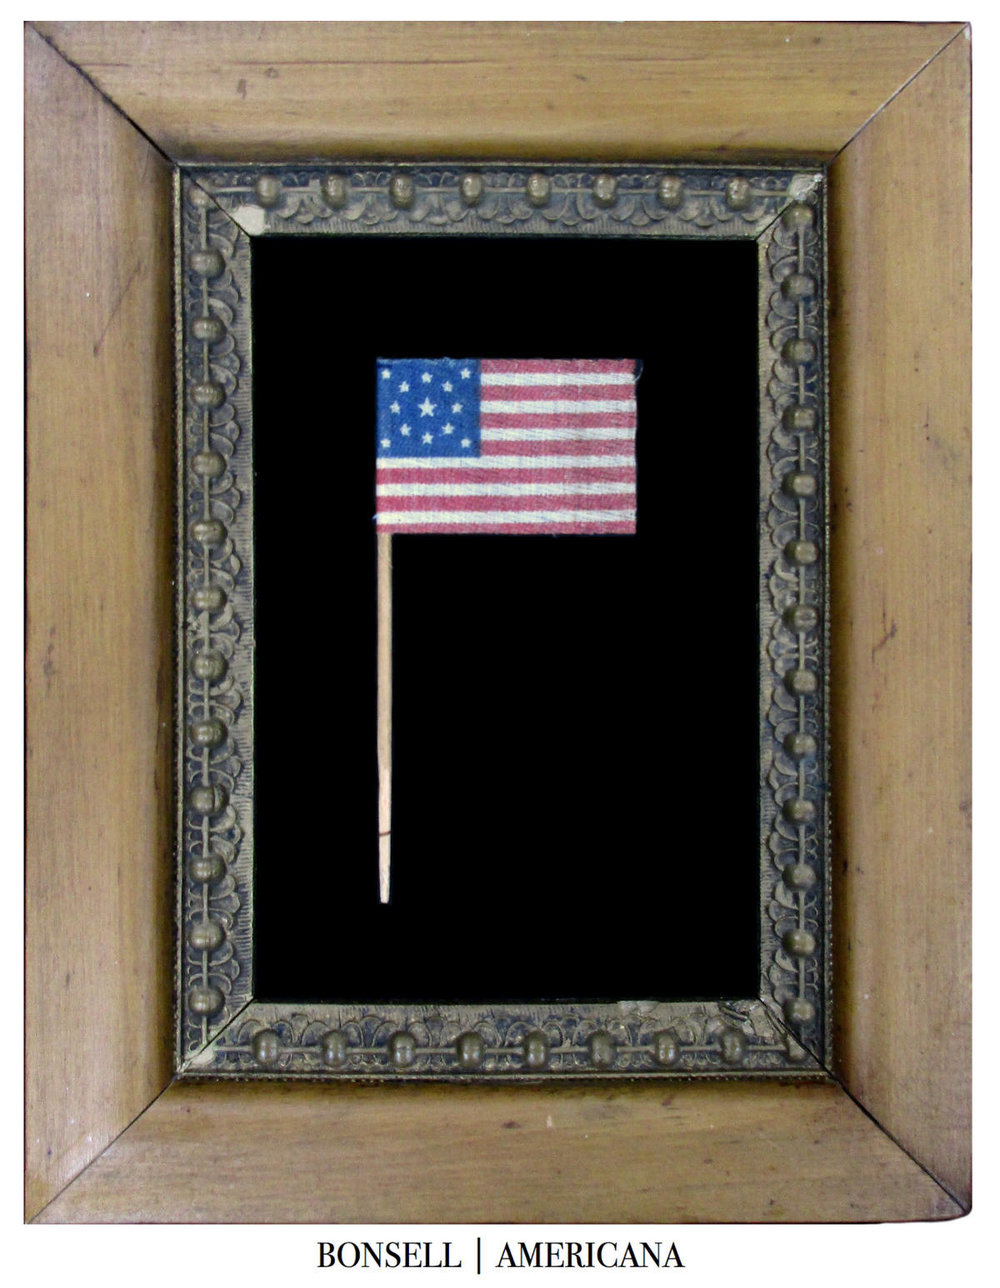 13 Star Antique US Centennial Parade Flag